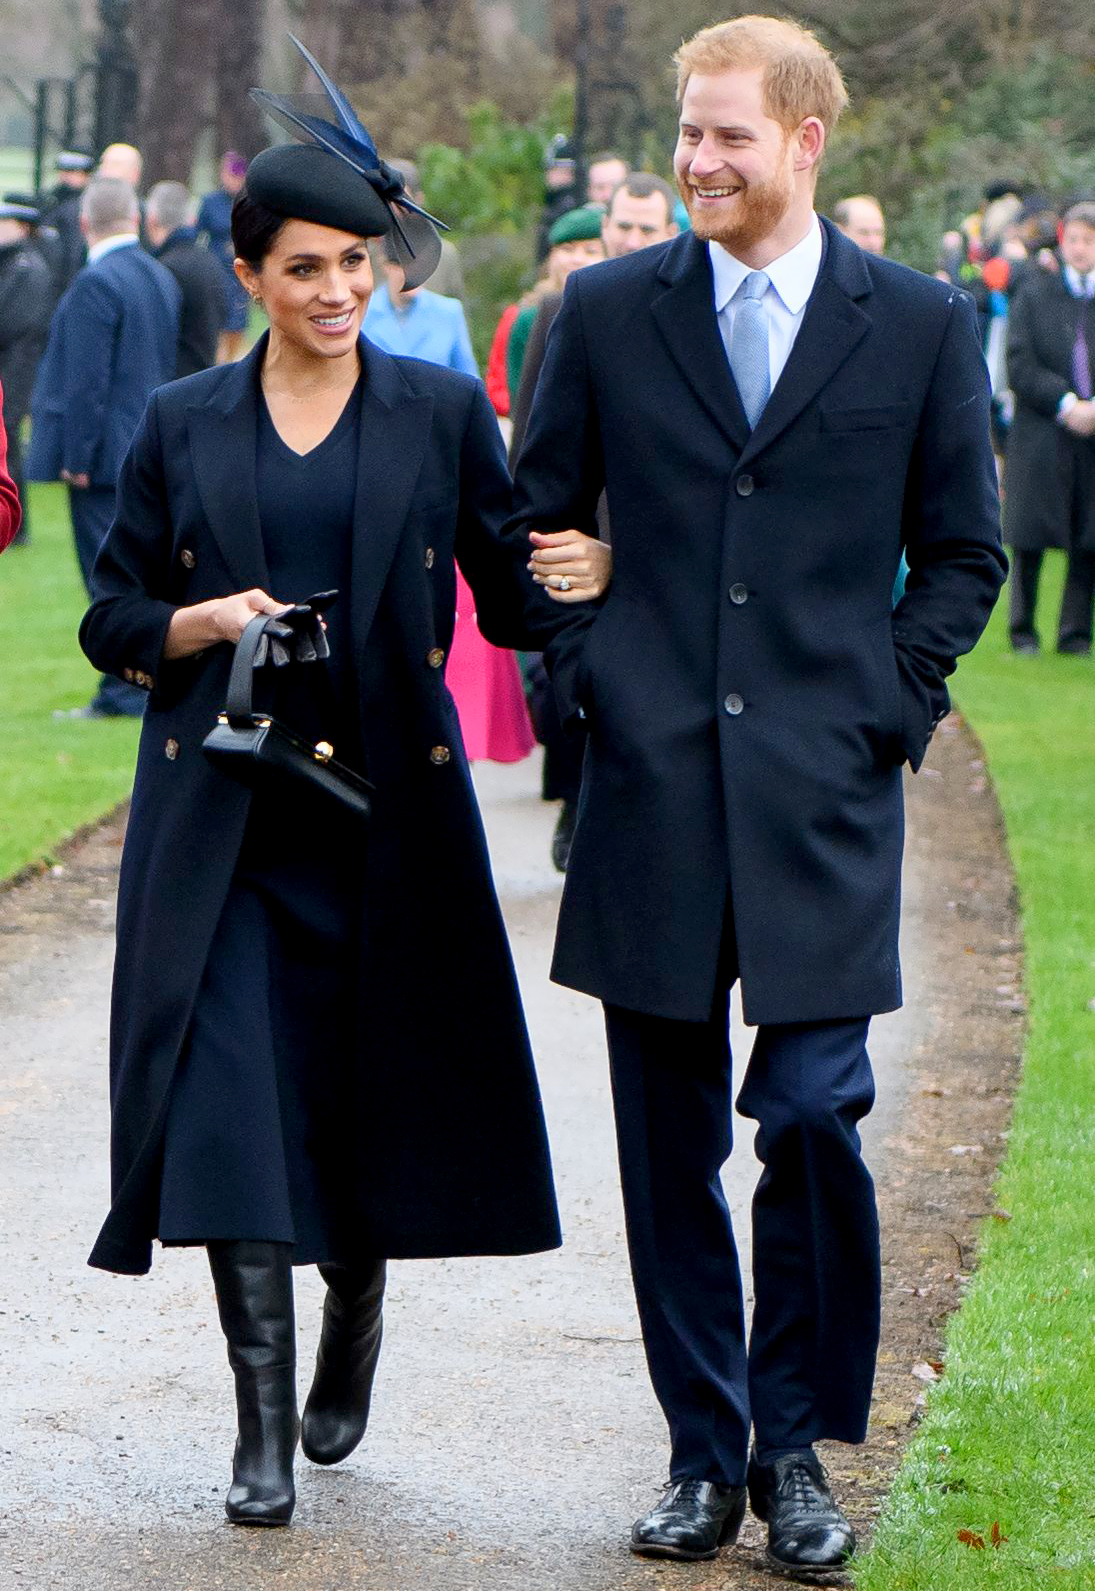 Will-'The-Crown'-Cover-Harry-and-Meghan's-Shocking-New-Move